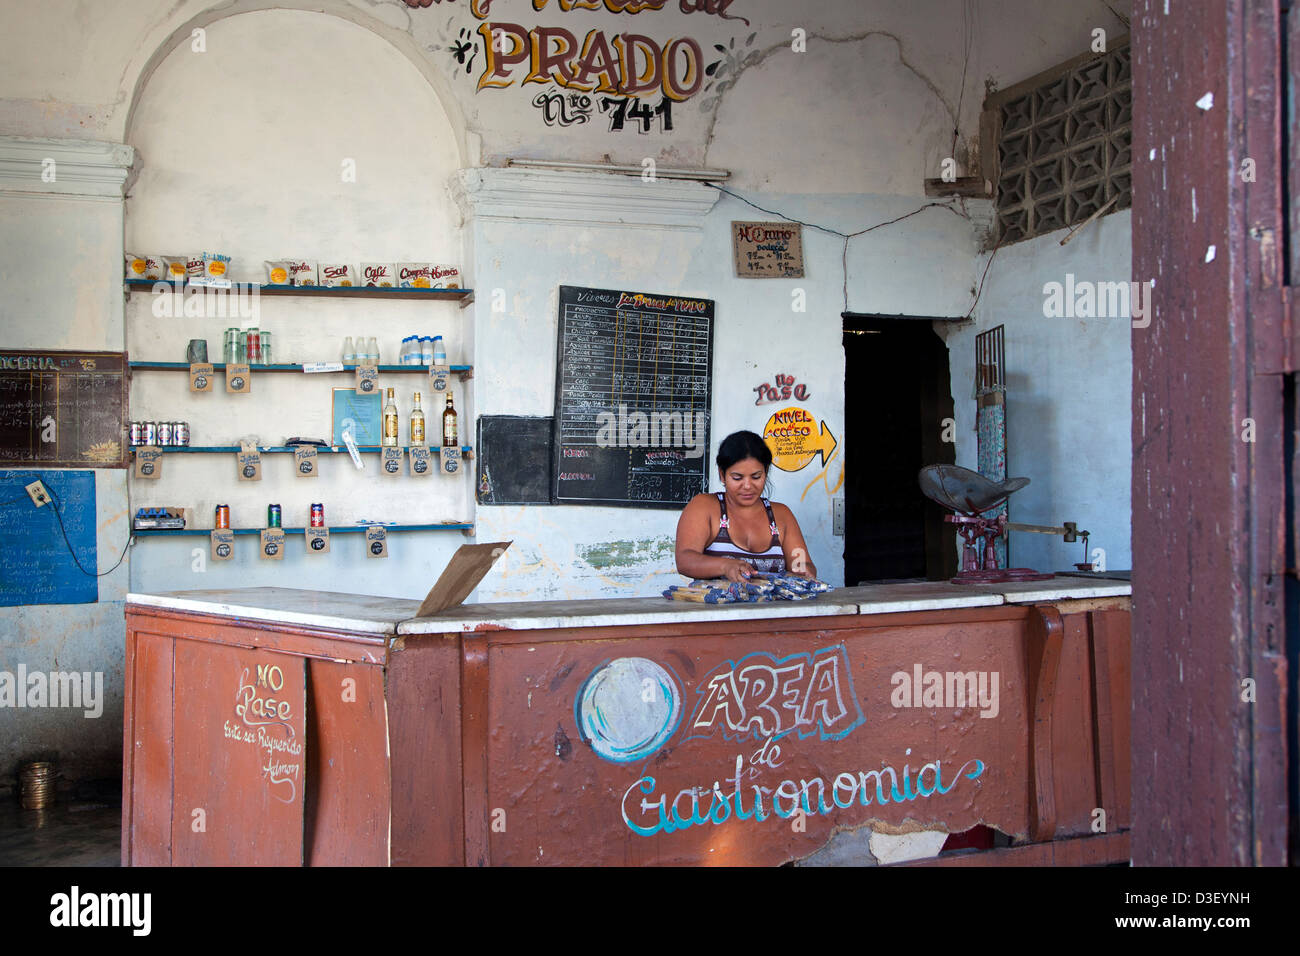 Shopkeeper behind counter of Cuban state shop in Cienfuegos, Cuba, Caribbean - Stock Image